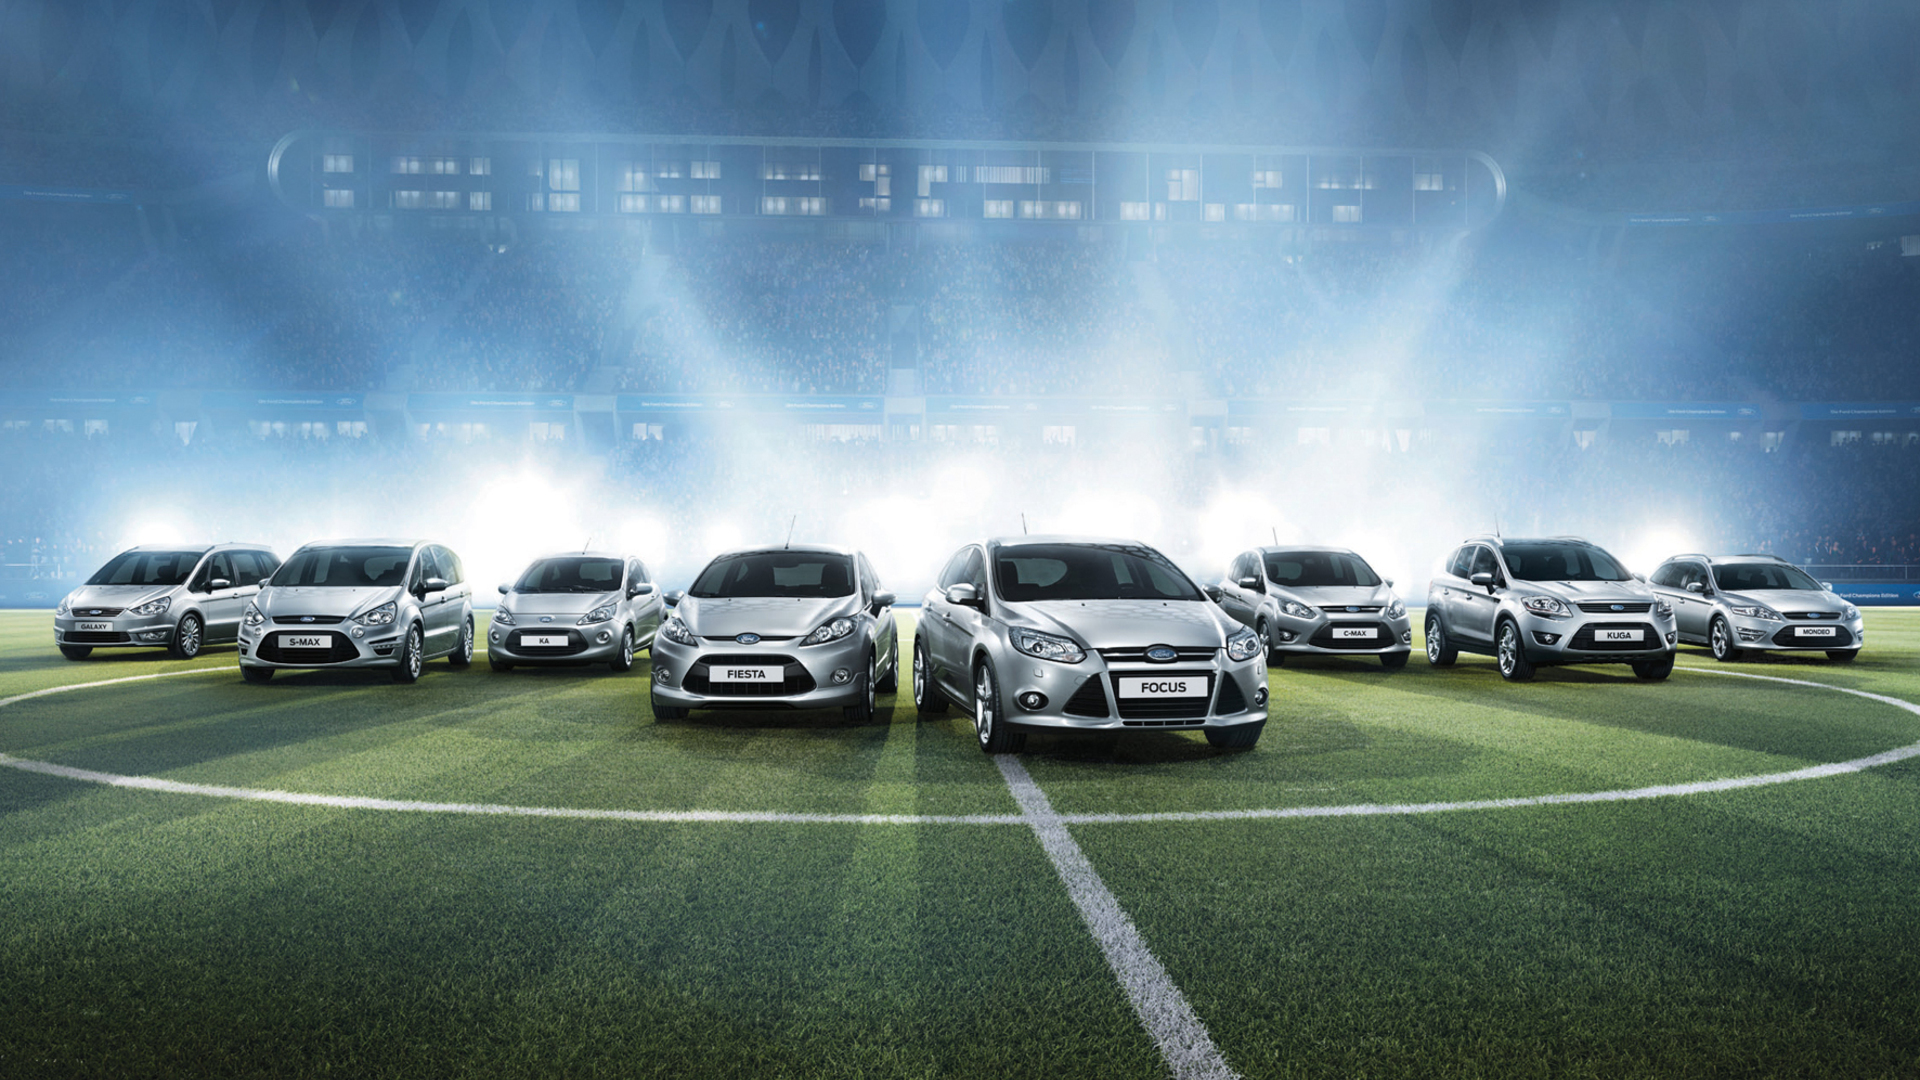 Ford and UEFA Champions League full hd wallpaper download cars 1920x1080